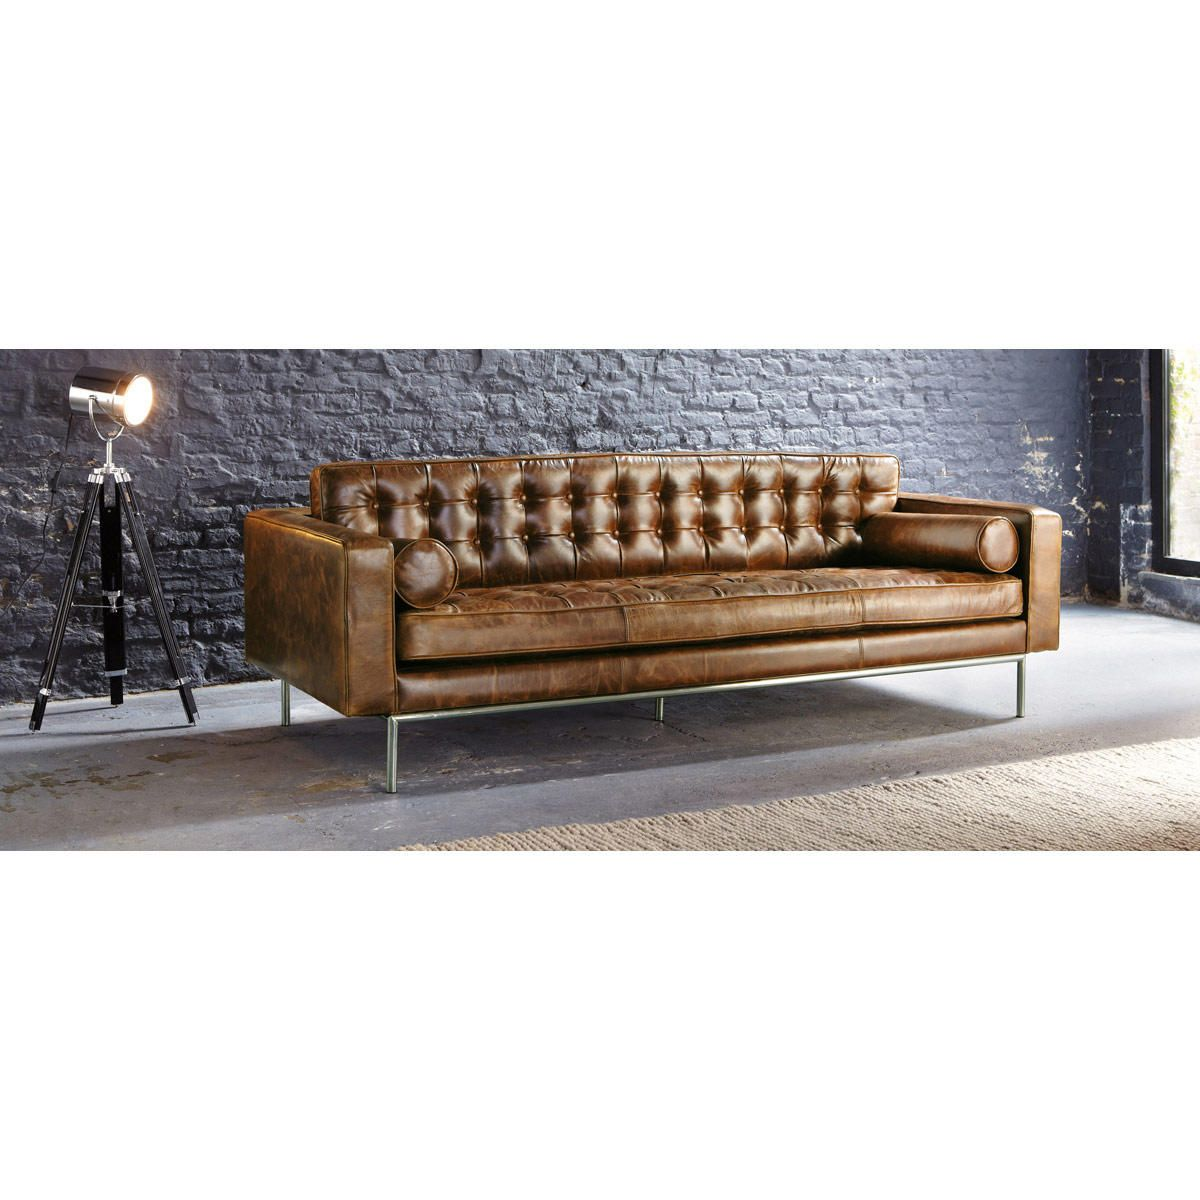 3 seater leather button sofa in brown | Maisons du Monde